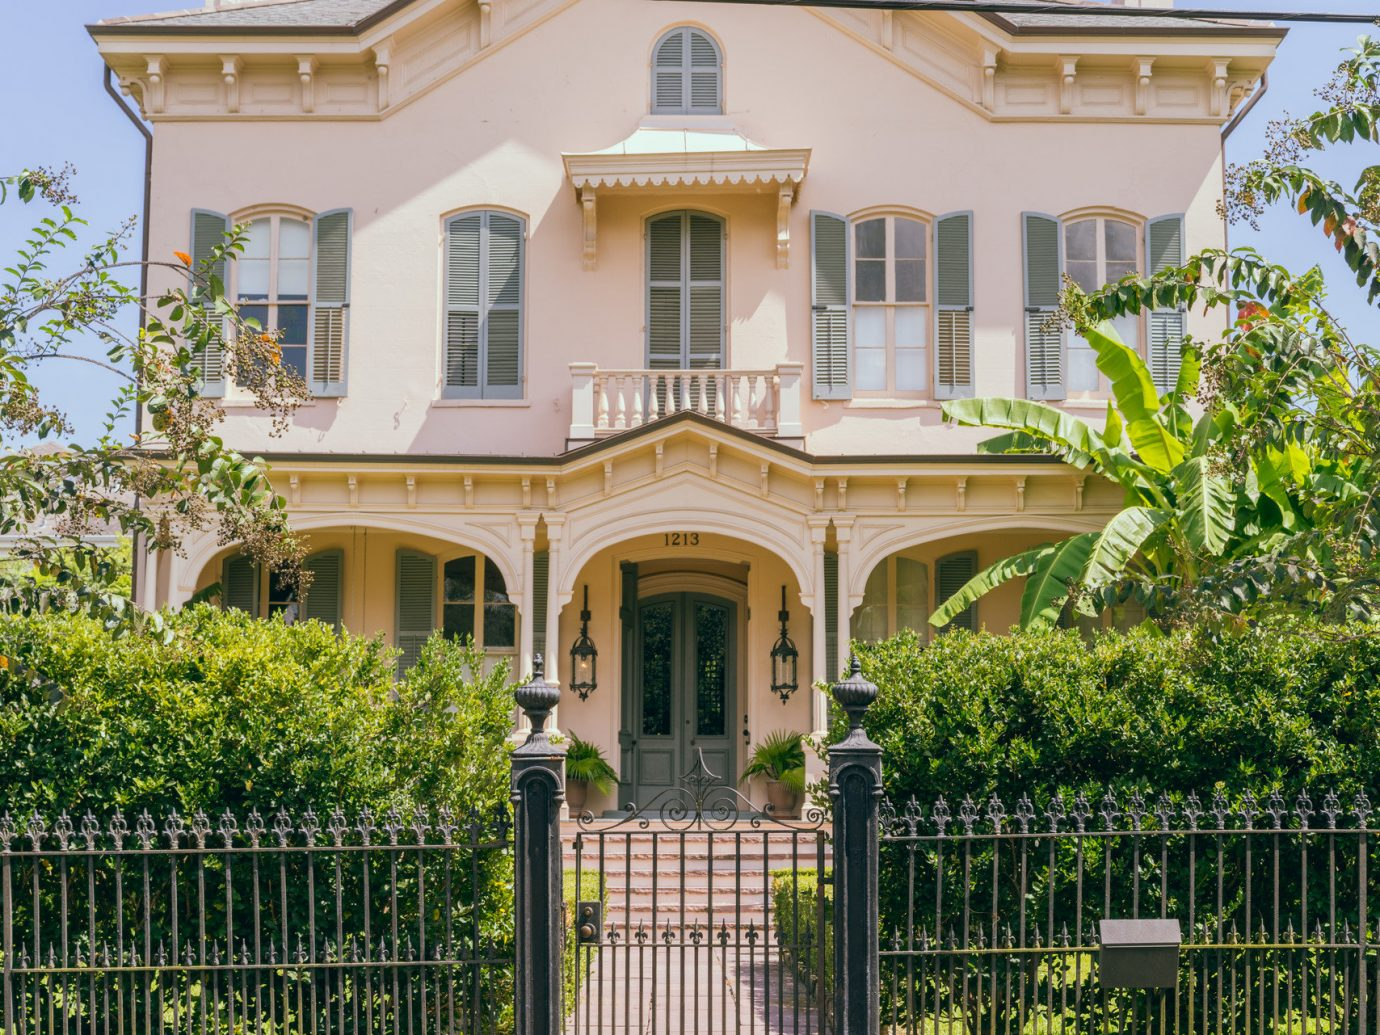 Historic house in New Orleans Louisiana